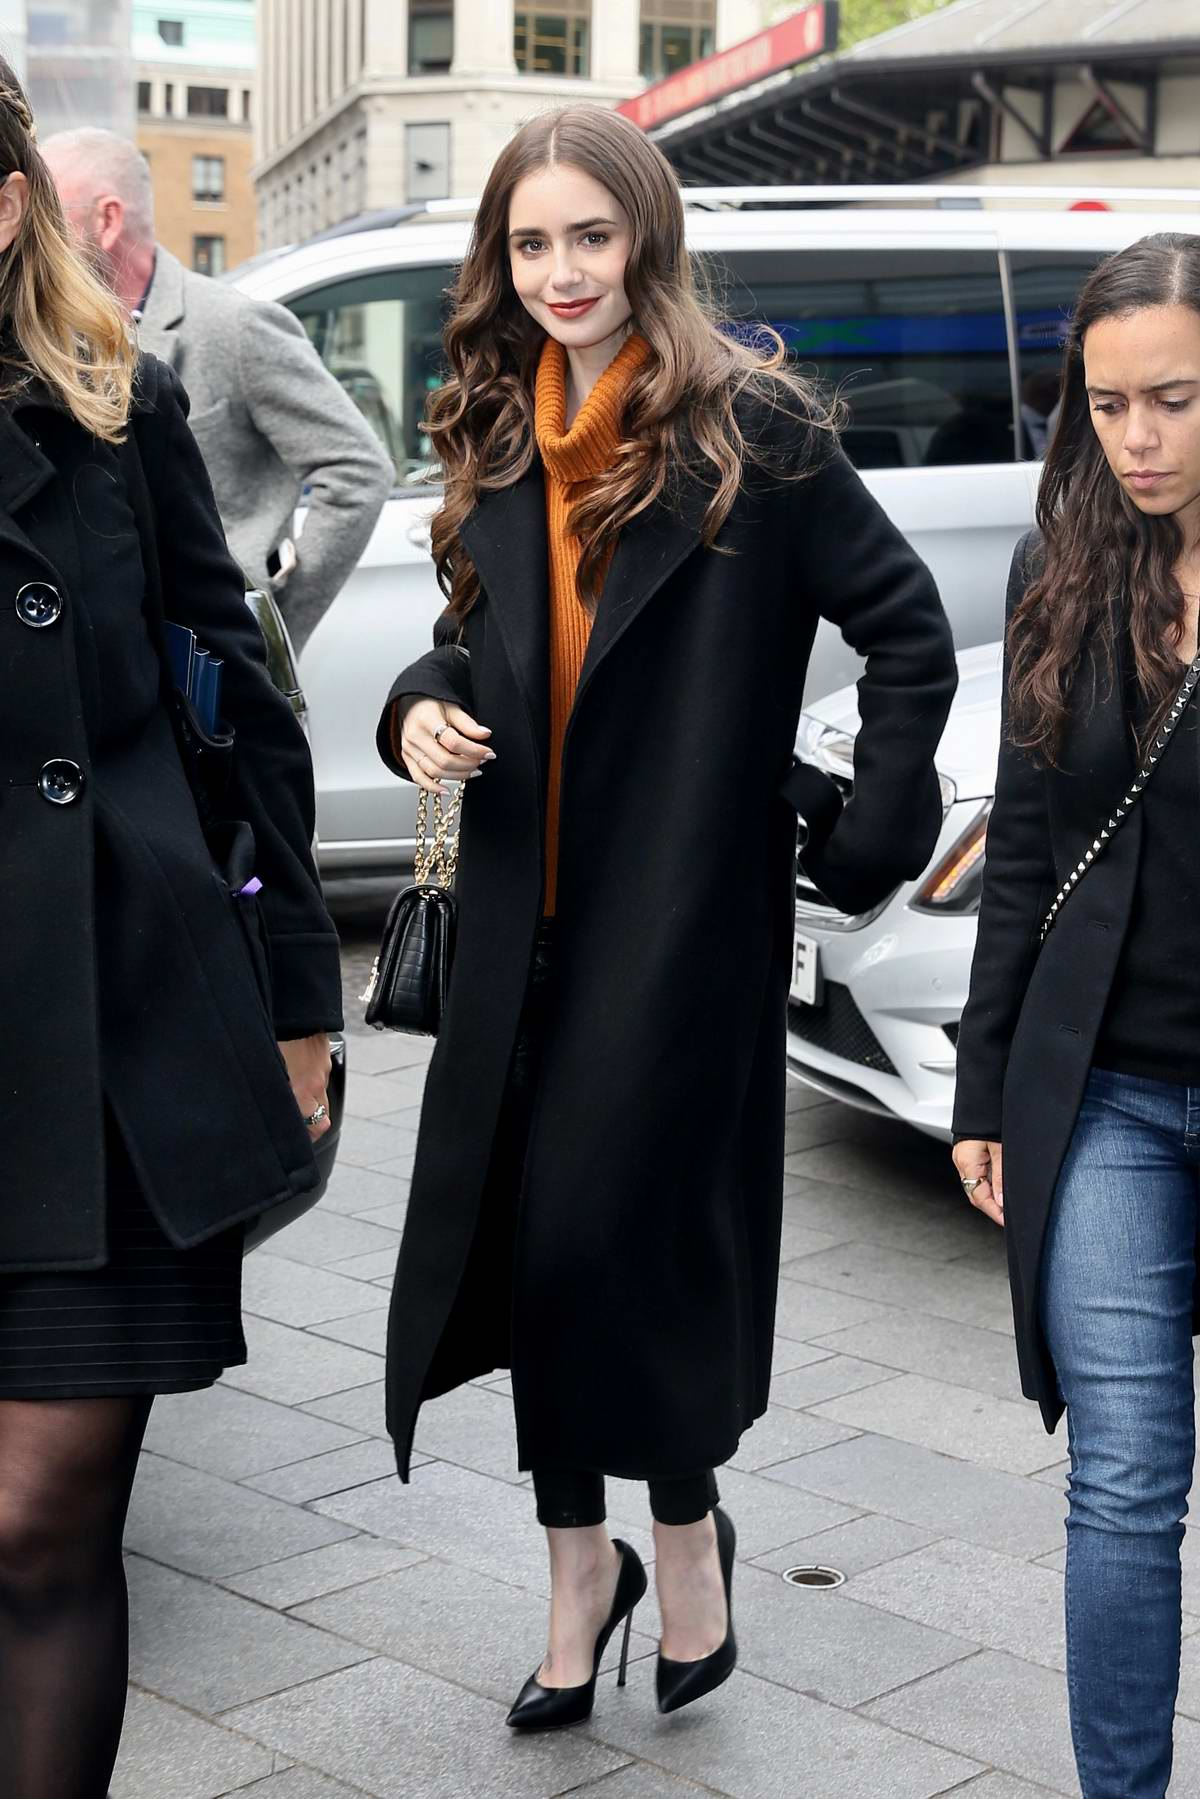 Lily Collins is all smiles as she arrives at Global studios for radio interviews in London, UK